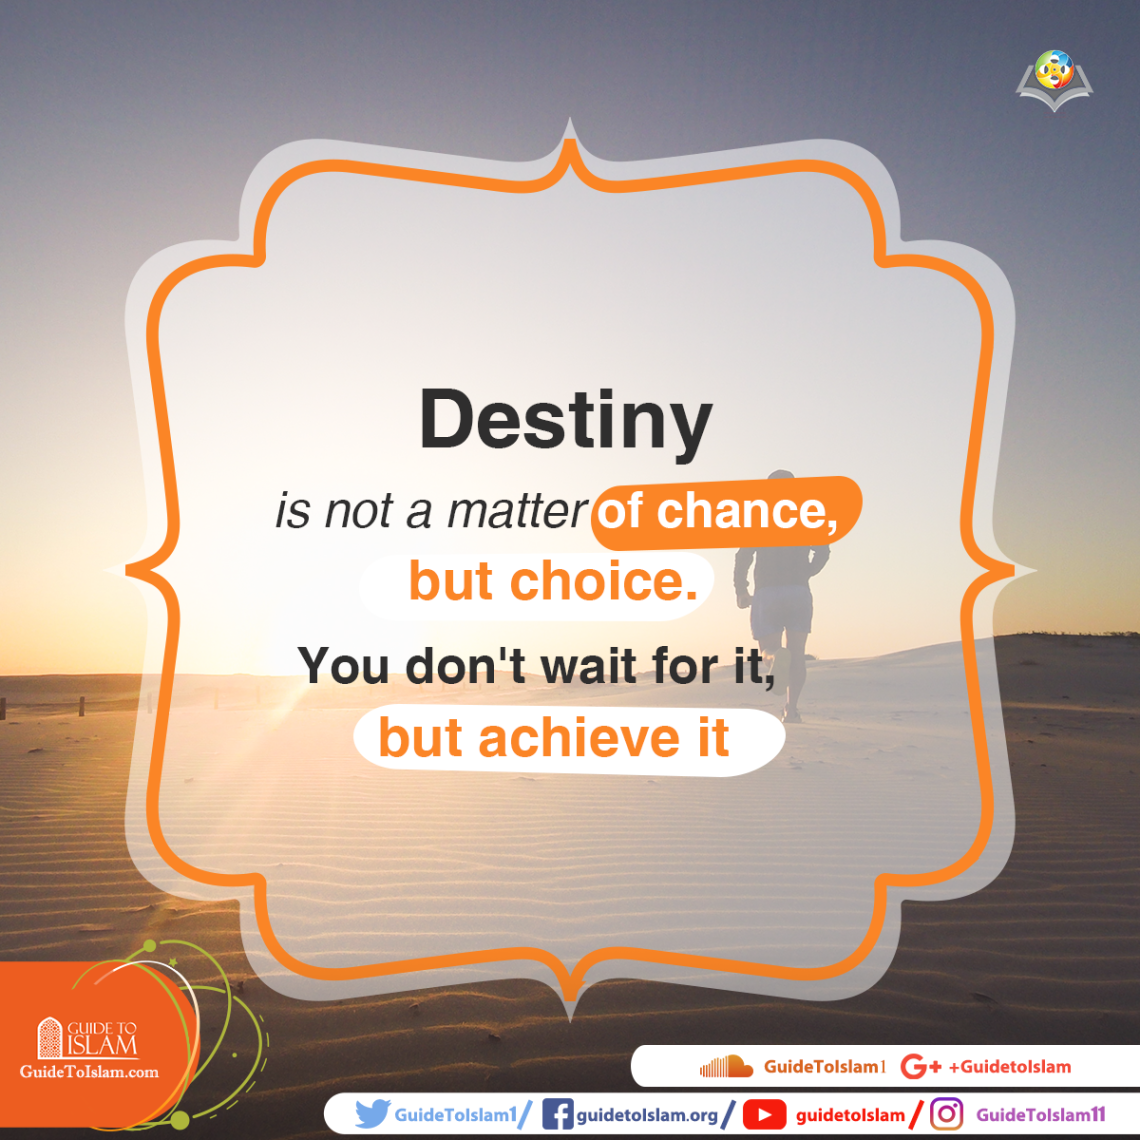 Destiny is a matter of a choice